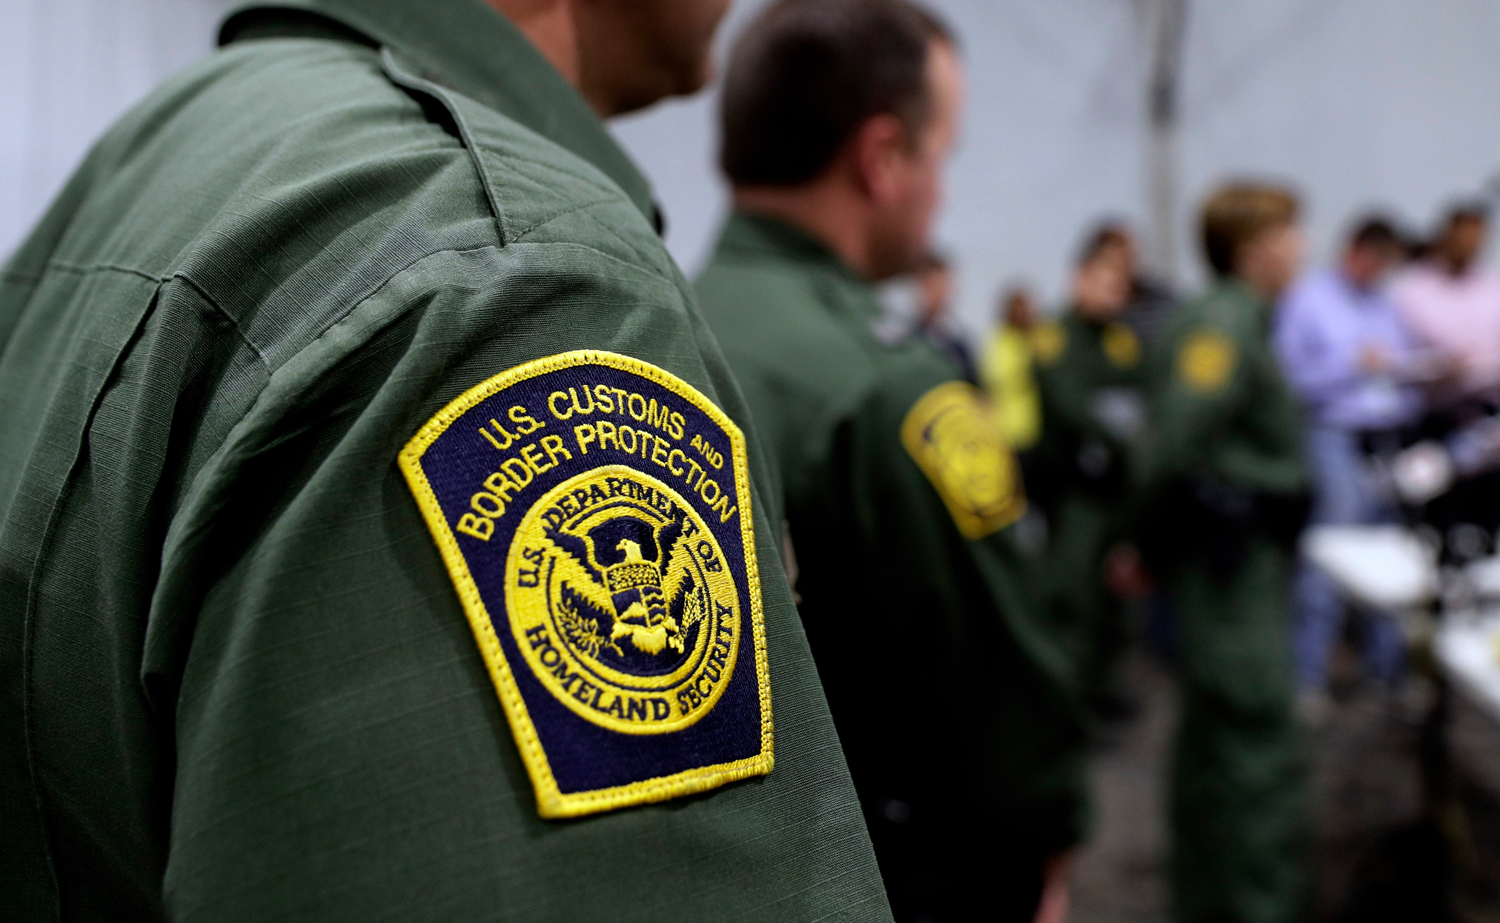 'Guats,' 'Tonks' and 'Subhuman Shit': The Shocking Texts of a Border Patrol Agent